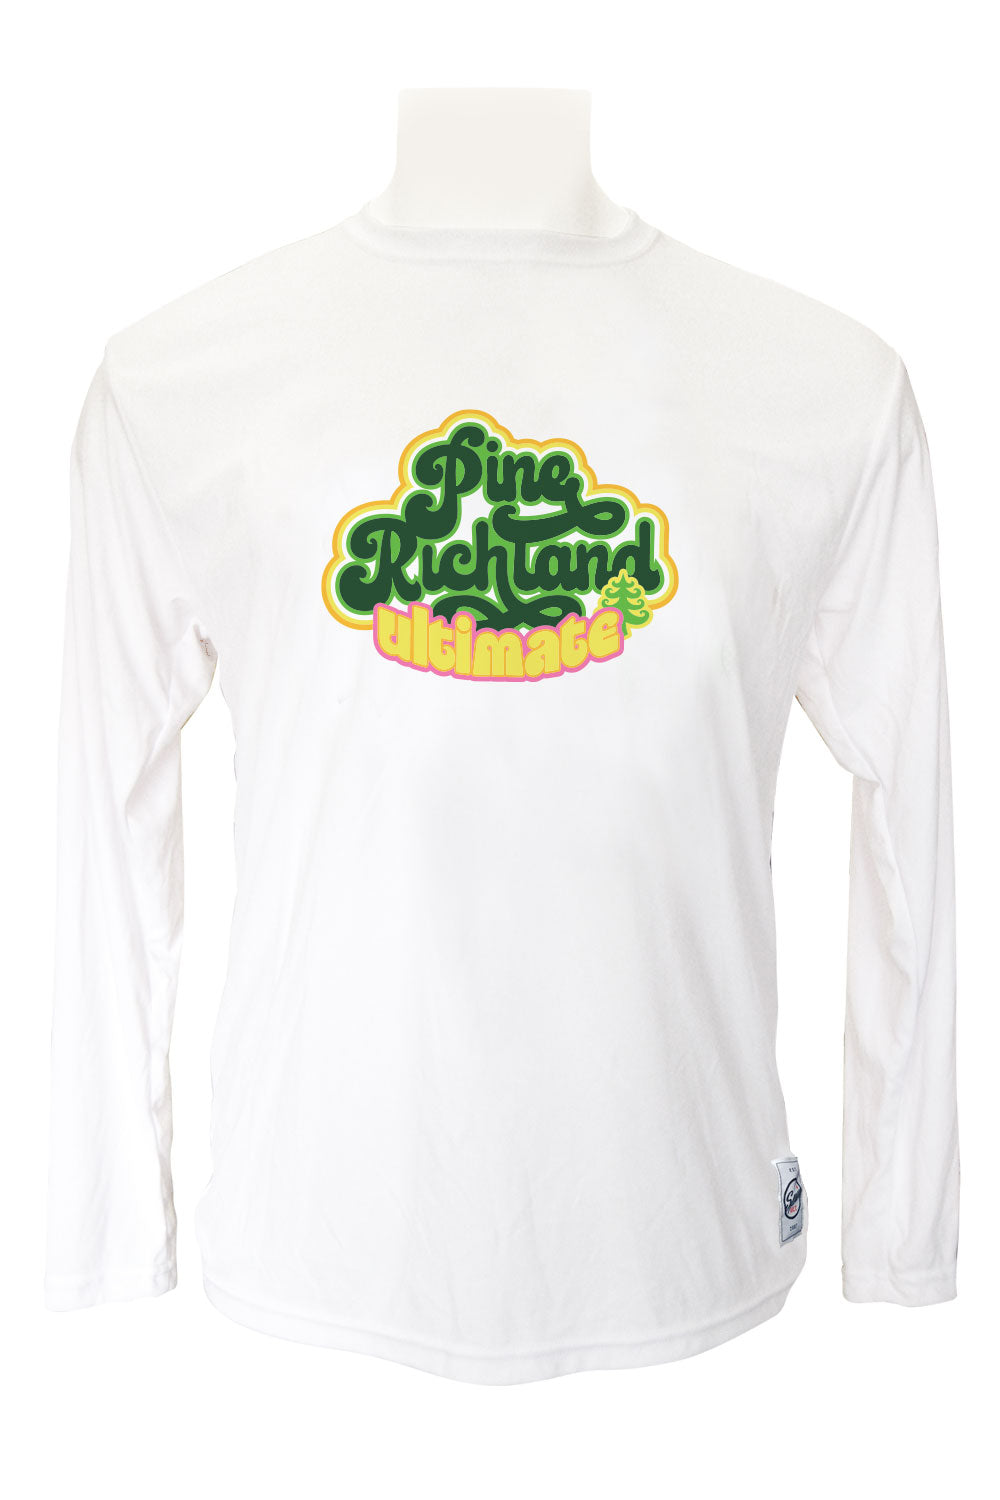 Pine Richland Long Sleeve Jersey (White)